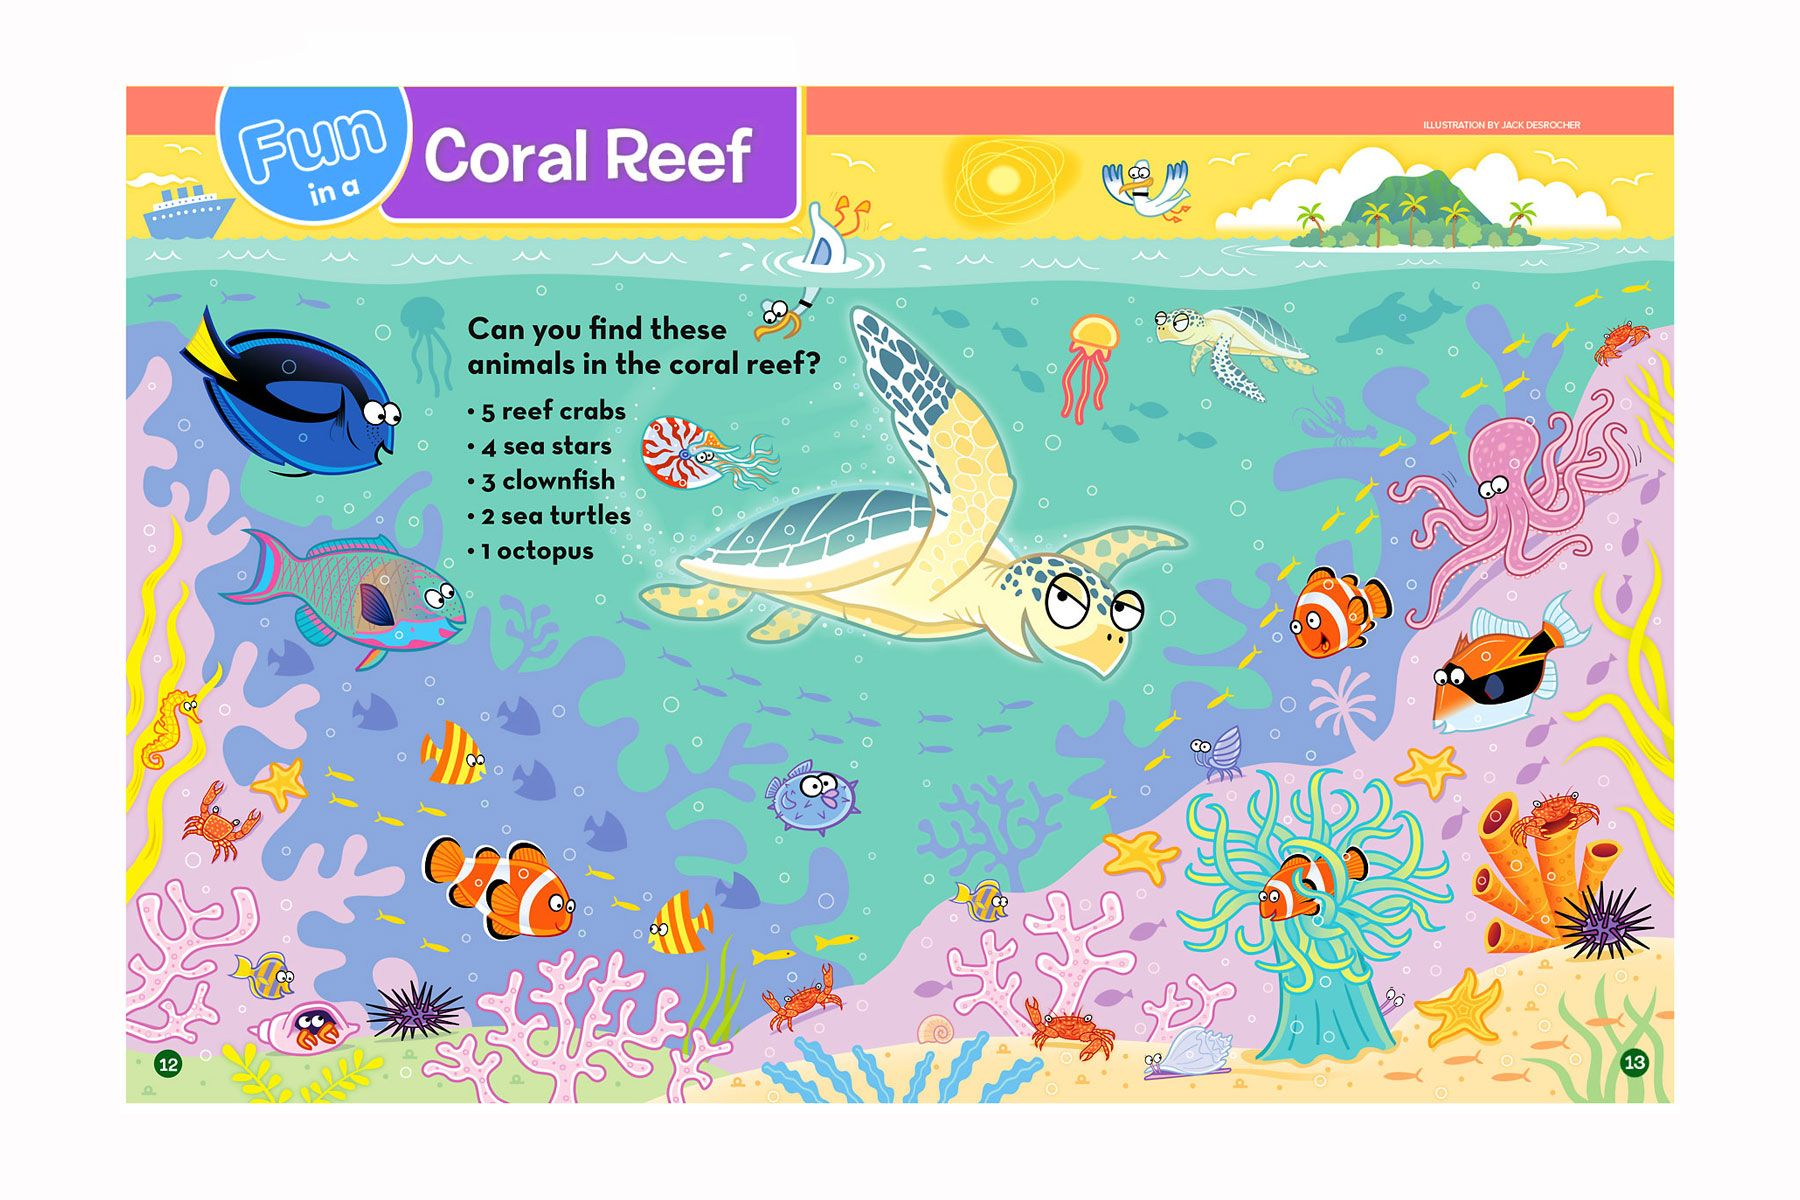 Fun in a Coral Reef